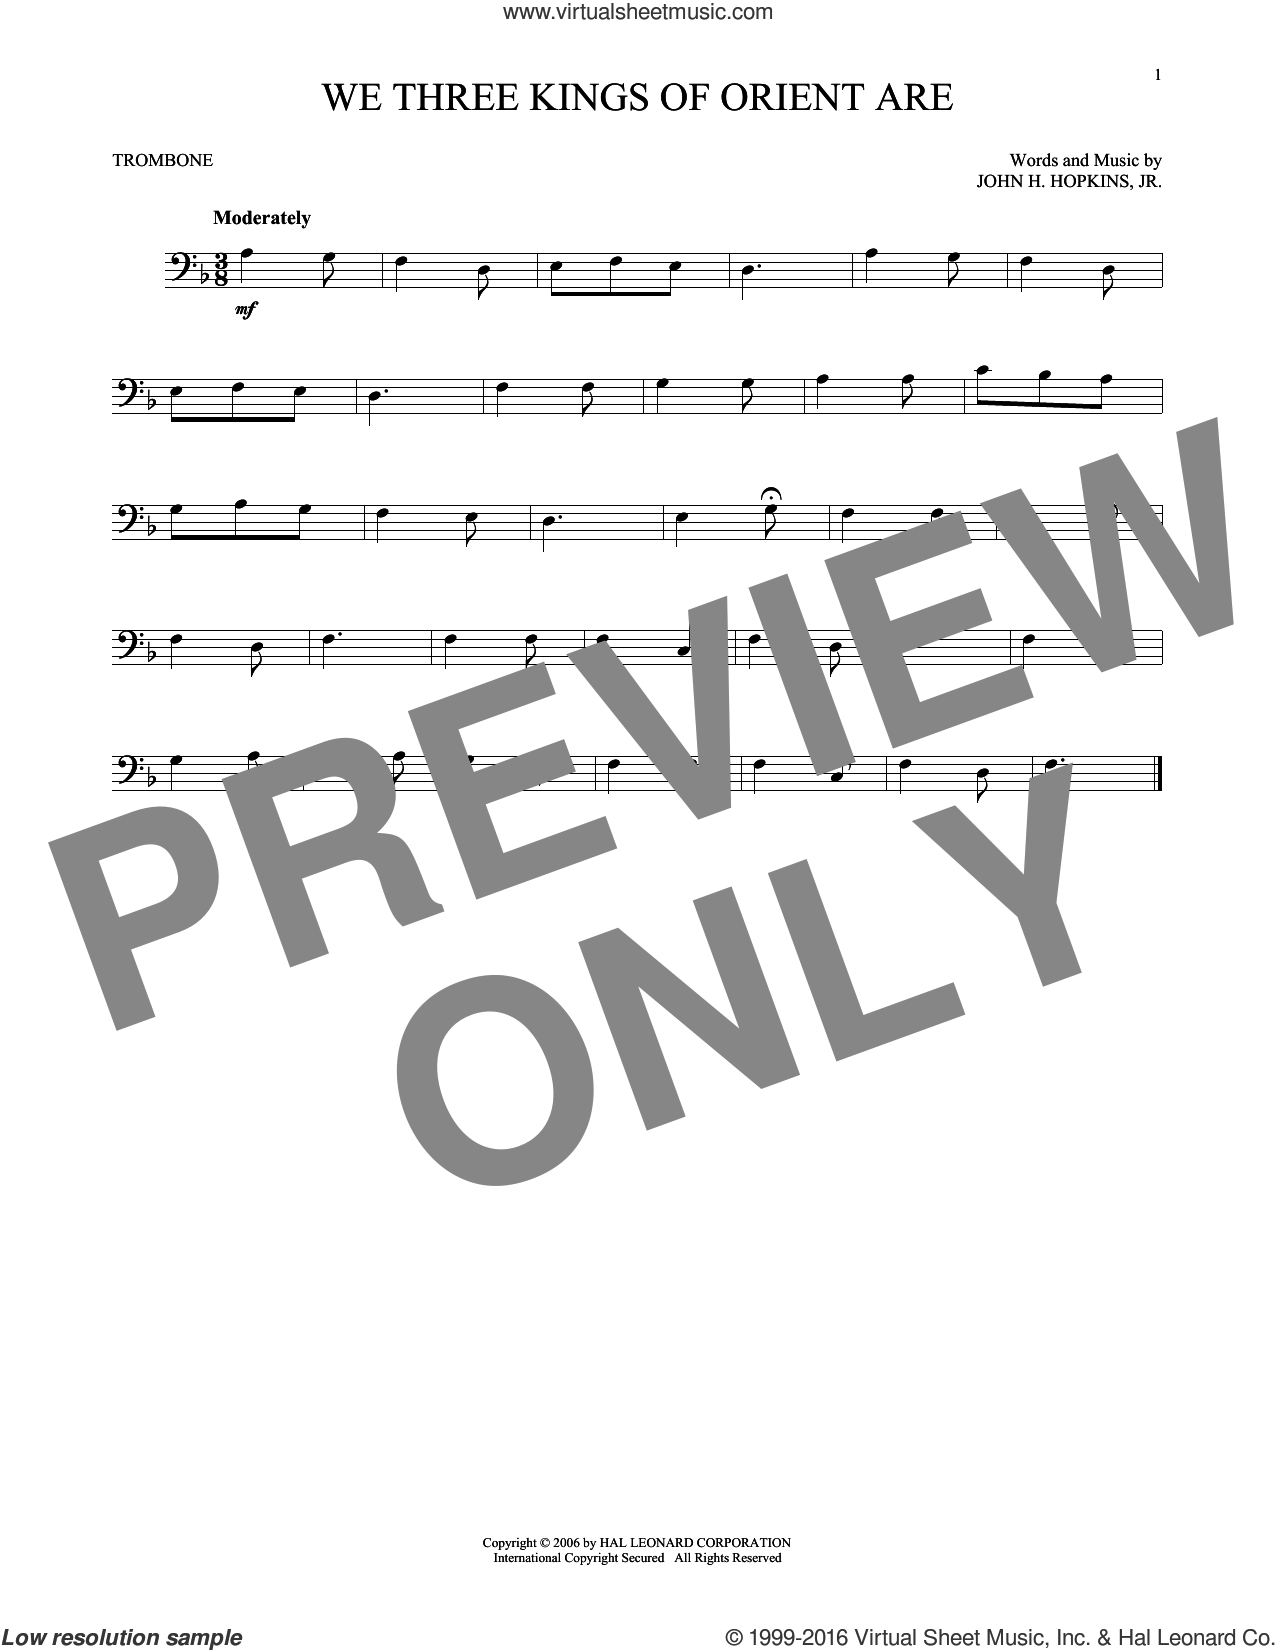 We Three Kings Of Orient Are sheet music for trombone solo by John H. Hopkins, Jr., intermediate skill level